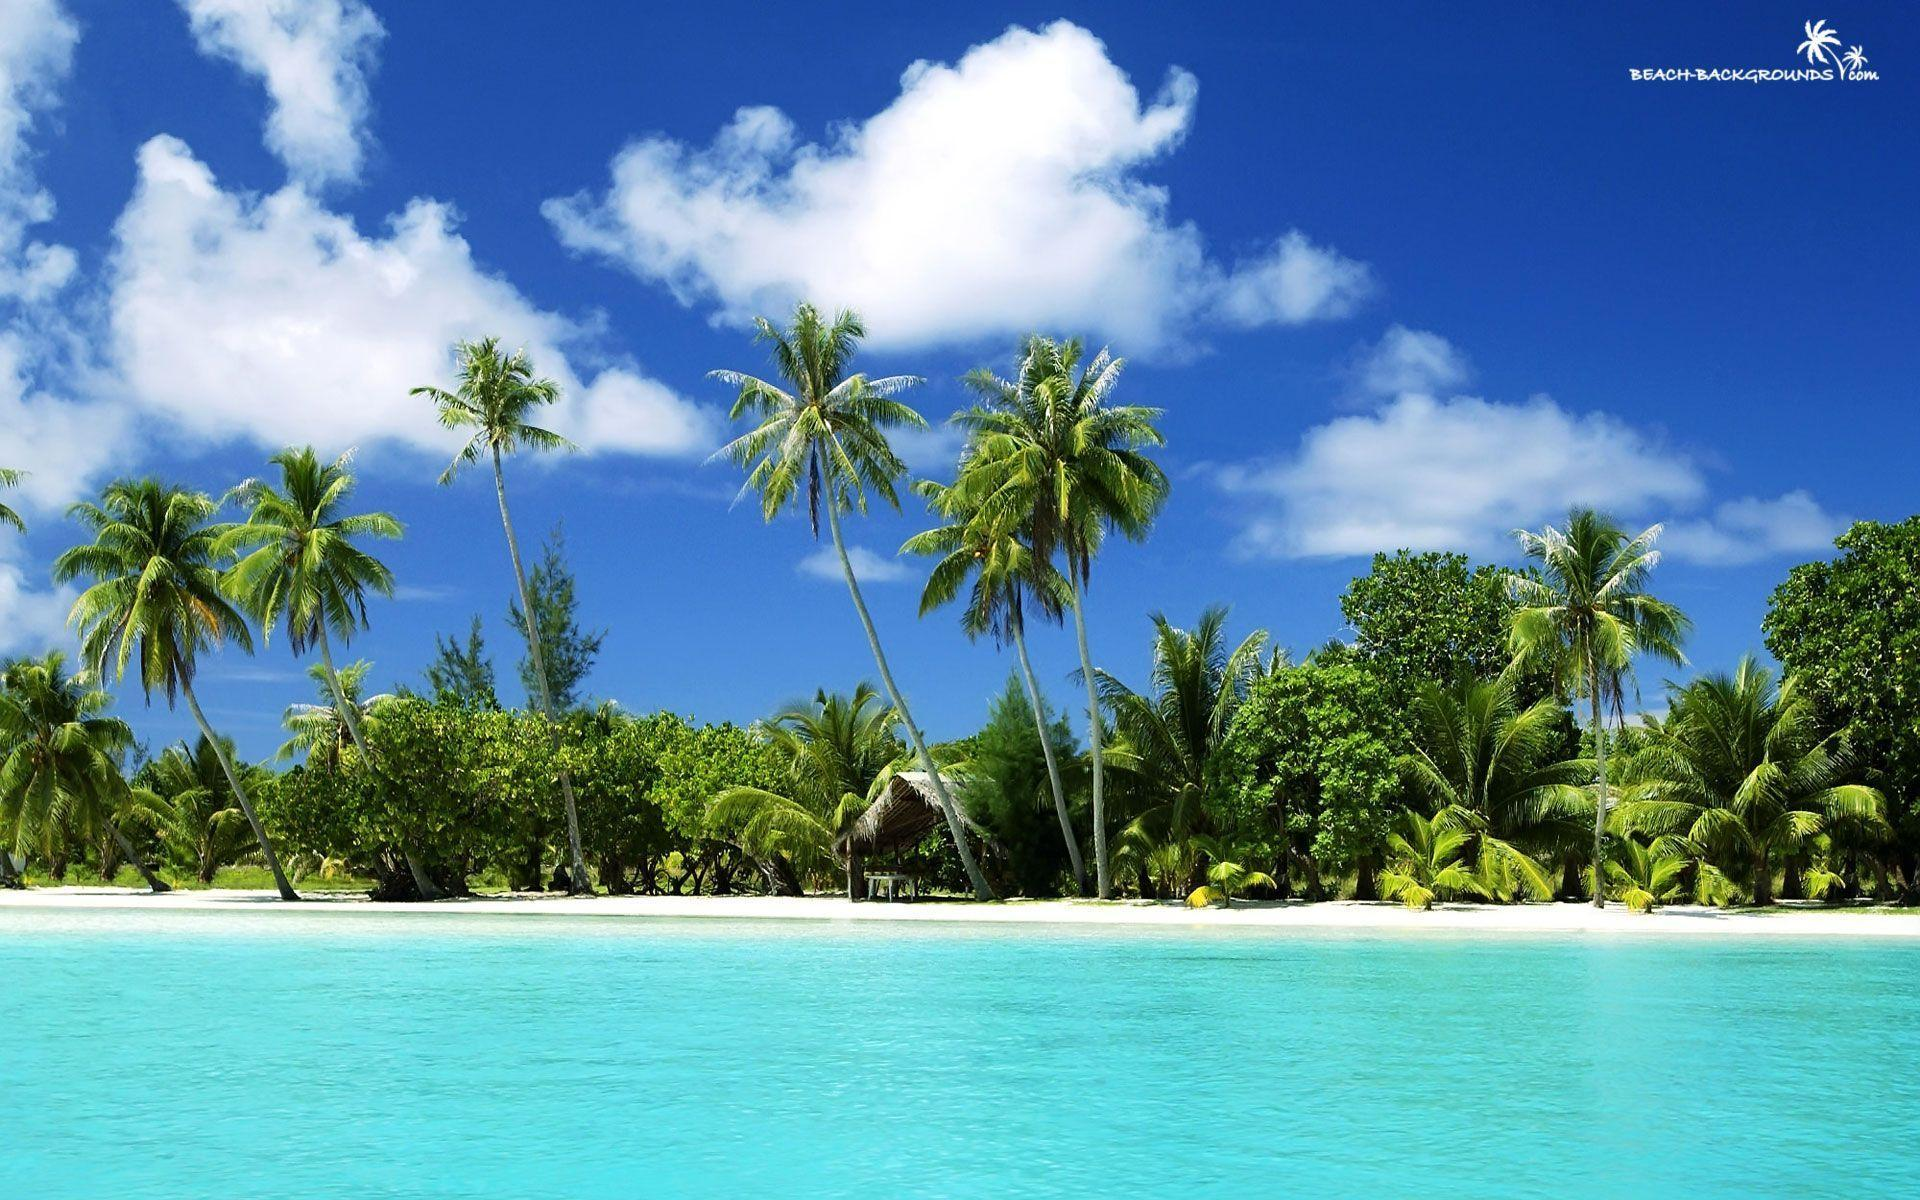 Tropical Beach Backgrounds Hd Desktop 10 HD Wallpapers